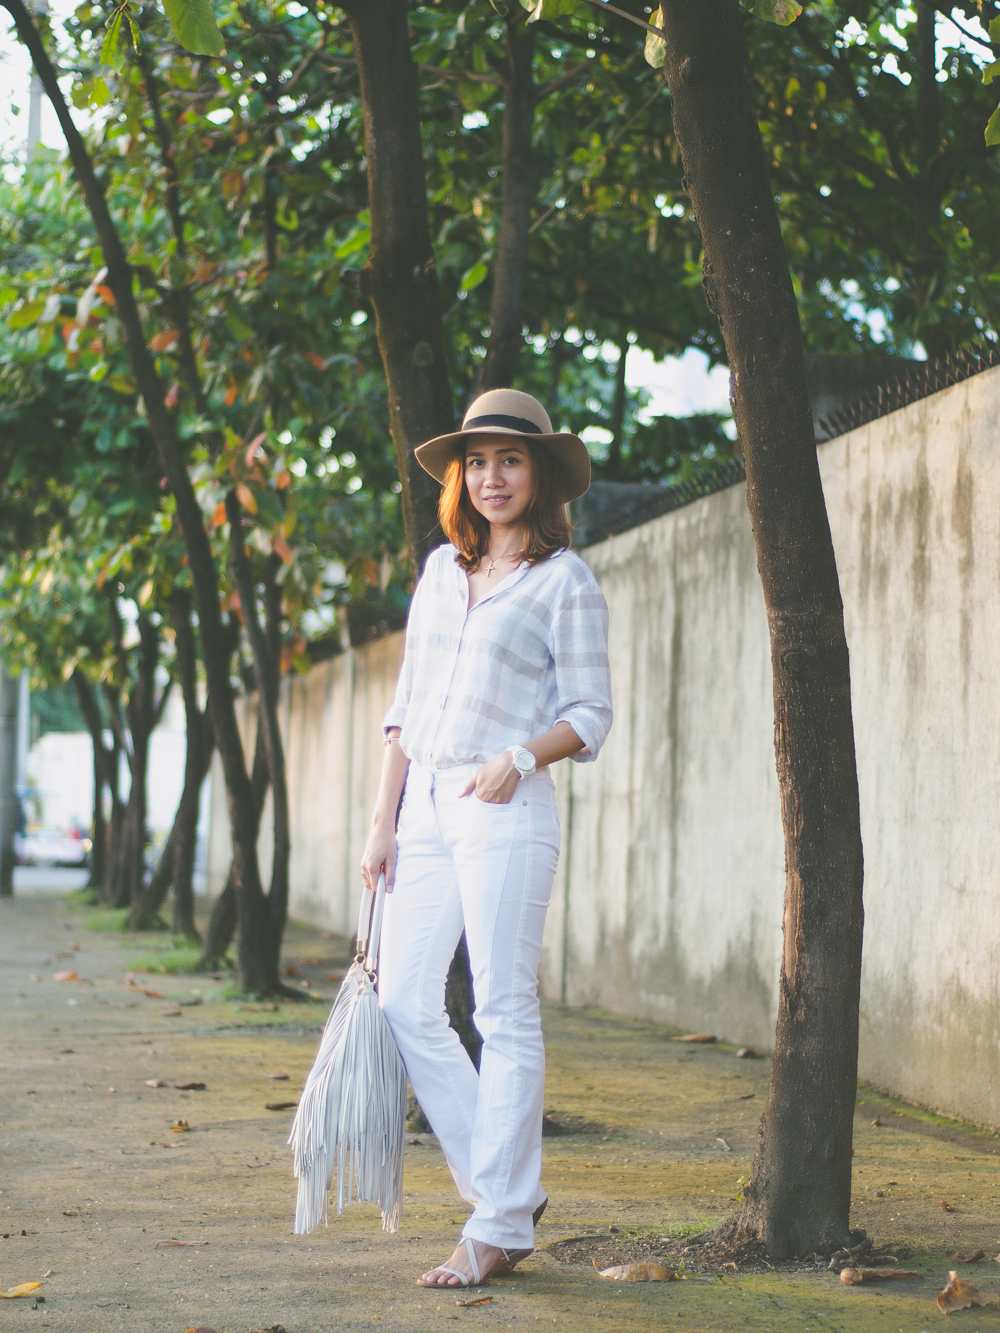 Linen top, linen polo shirt, women's linen shirt, all white outfit, summer look, summer dressing, summer ootd, cebu fashion bloggers, cebu blogger, cebu fashion, philippine street style, outfit, fringe bag, cebu blogs, toni pino-oca, life in the tropics, pandora bracelet, mango sandals, michael kors watch